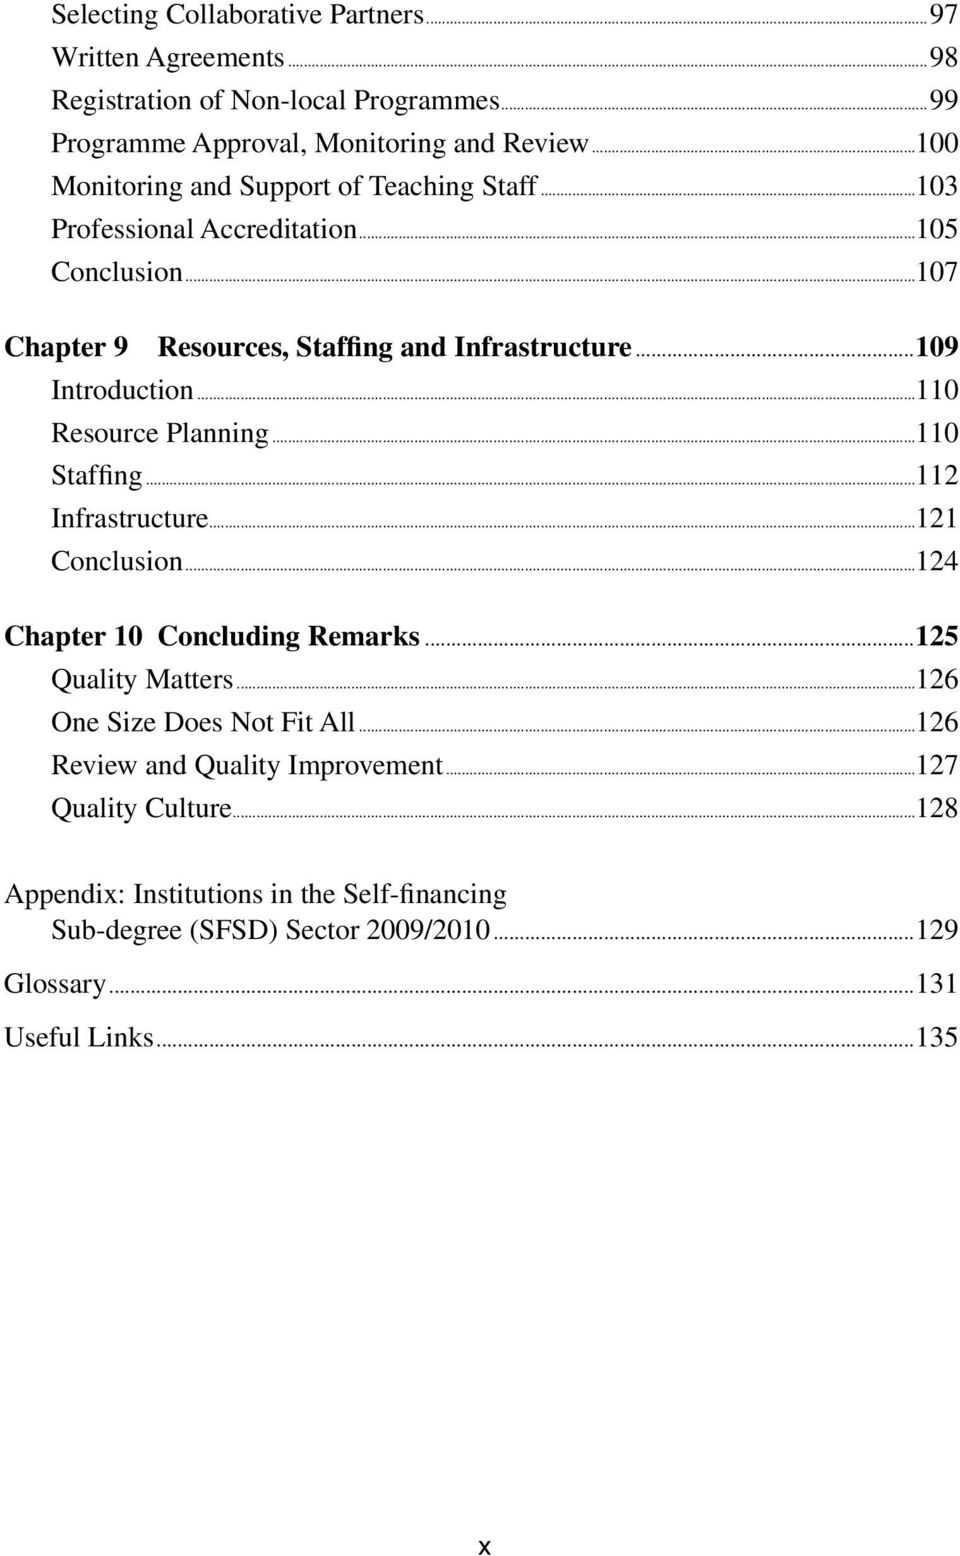 ..109 Introduction...110 Resource Planning...110 Staffing...112 Infrastructure...121 Conclusion...124 Chapter 10 Concluding Remarks...125 Quality Matters.